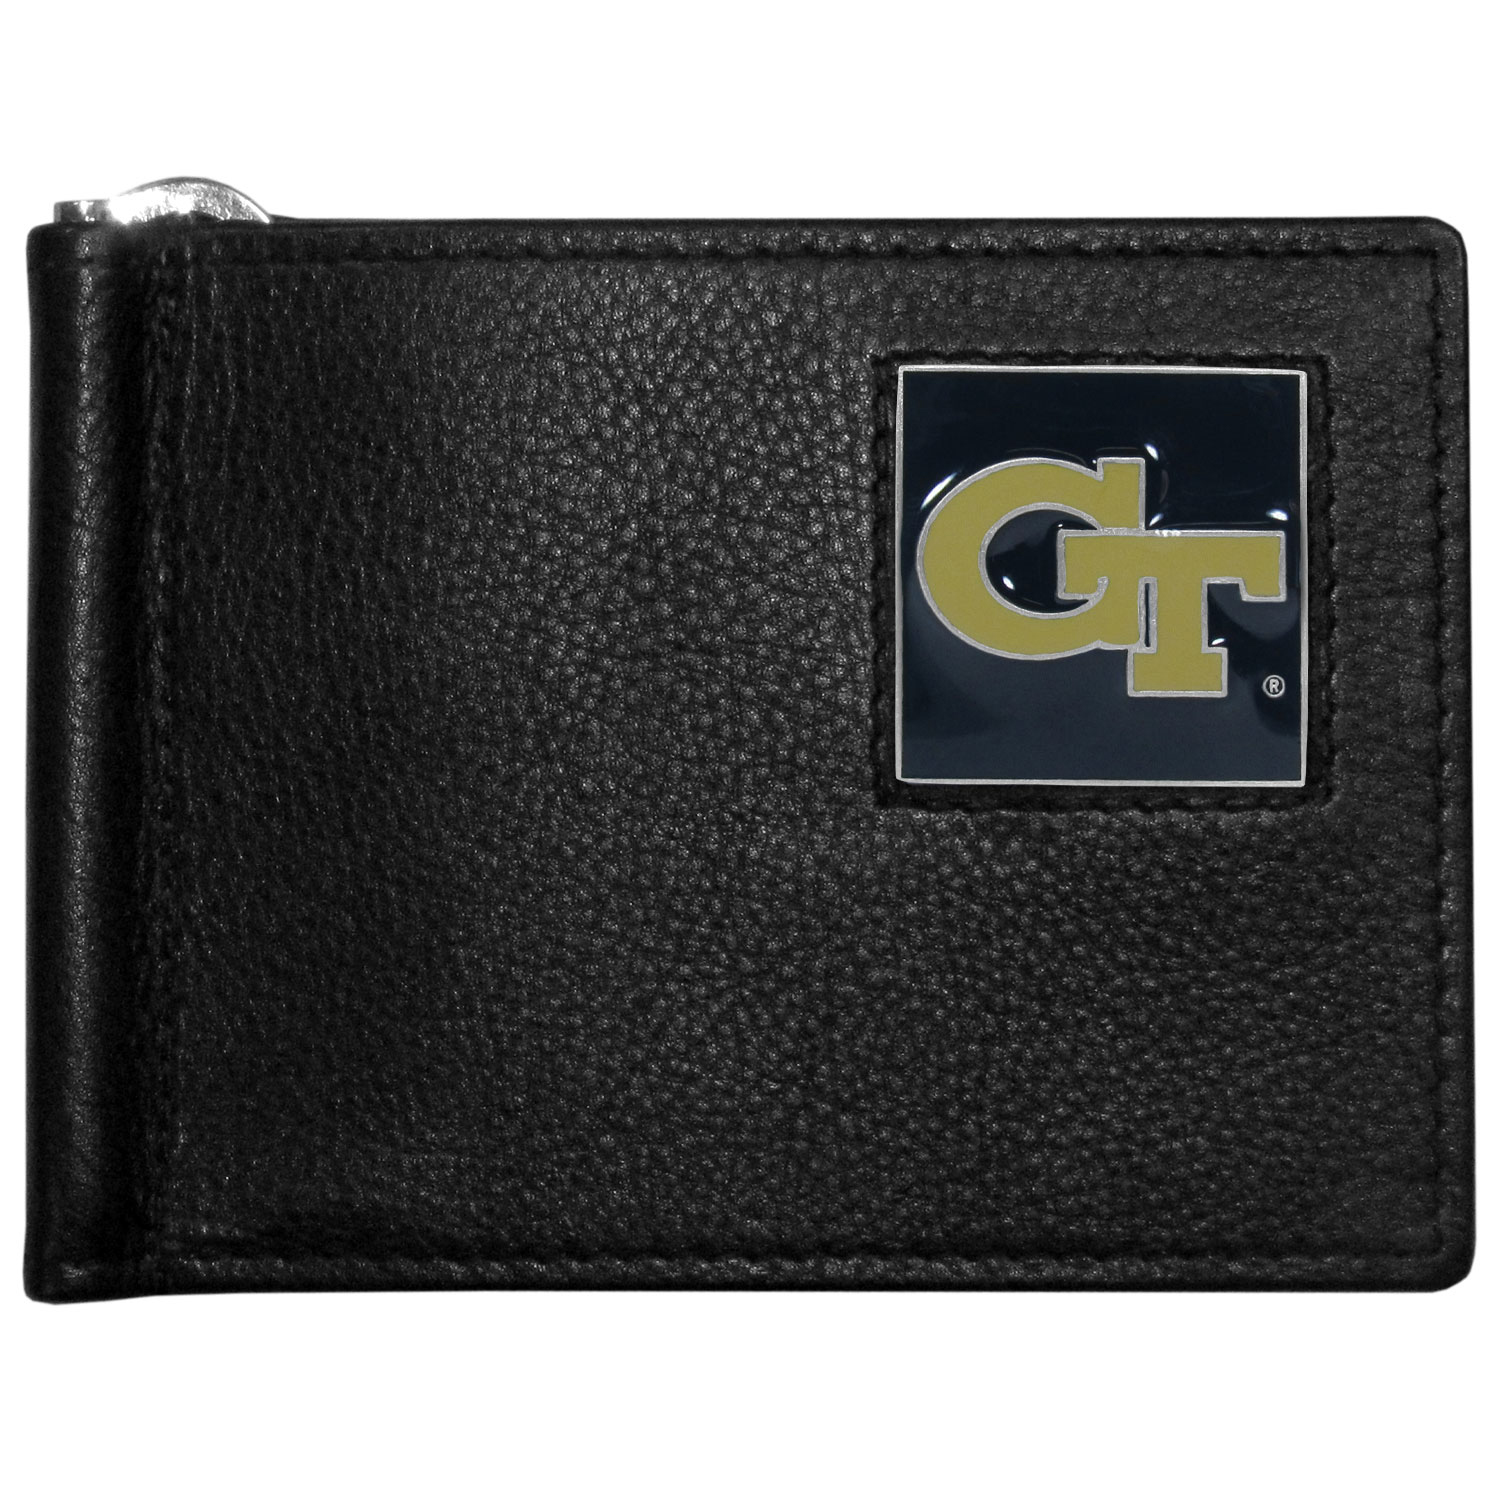 Georgia Tech Yellow Jackets Leather Bill Clip Wallet - This cool new style wallet features an inner, metal bill clip that lips up for easy access. The super slim wallet holds tons of stuff with ample pockets, credit card slots & windowed ID slot.  The wallet is made of genuine fine grain leather and it finished with a metal Georgia Tech Yellow Jackets emblem. The wallet is shipped in gift box packaging.